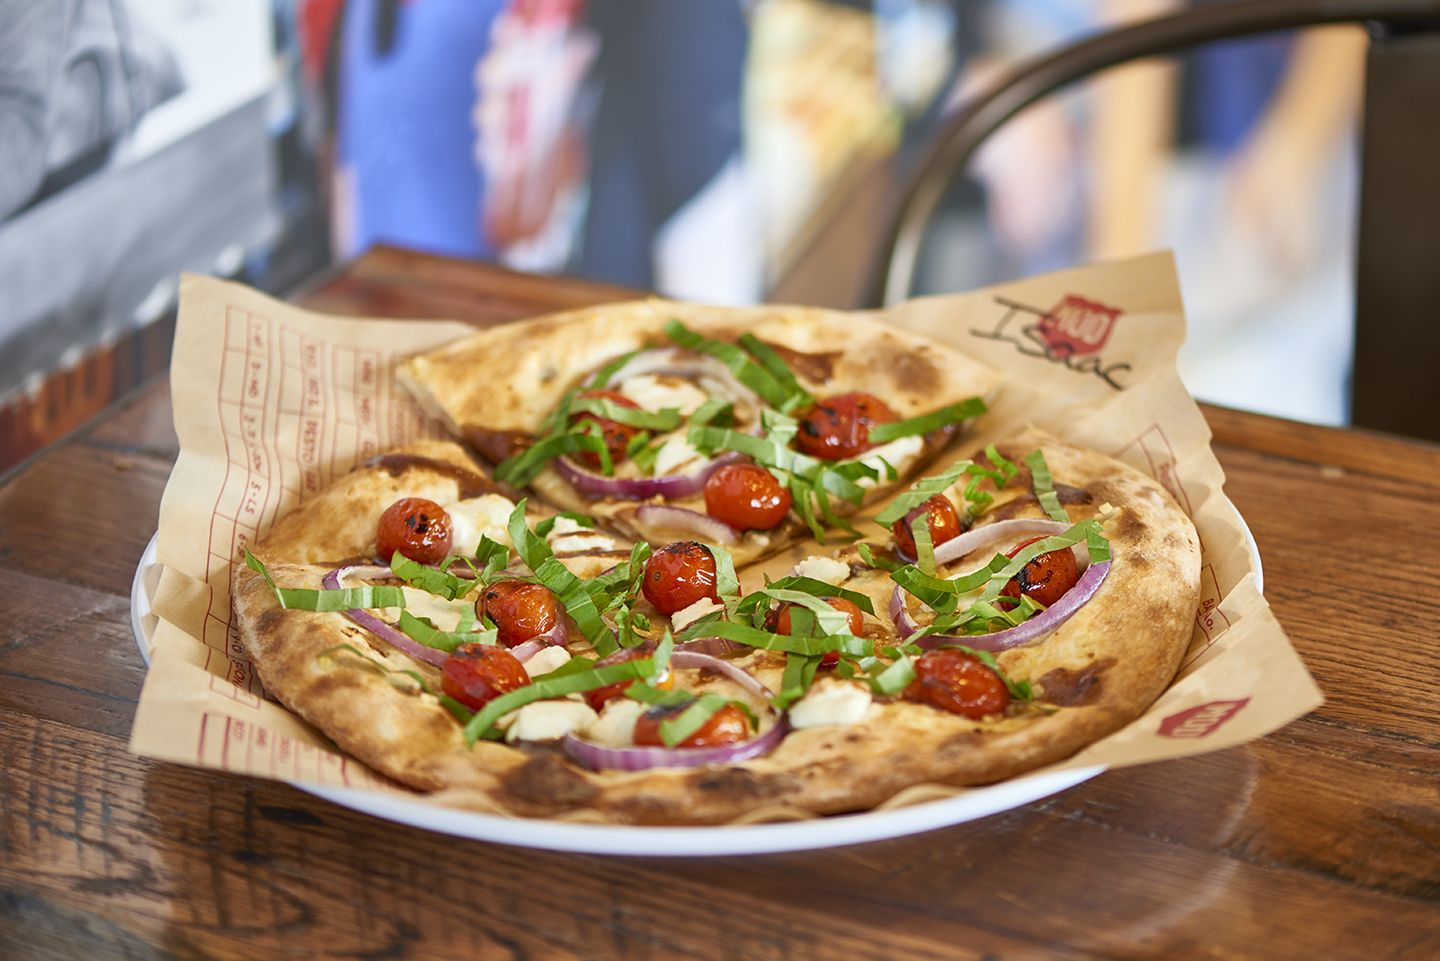 MOD Pizza Introduces Its First Impact Pizza - the Isaac